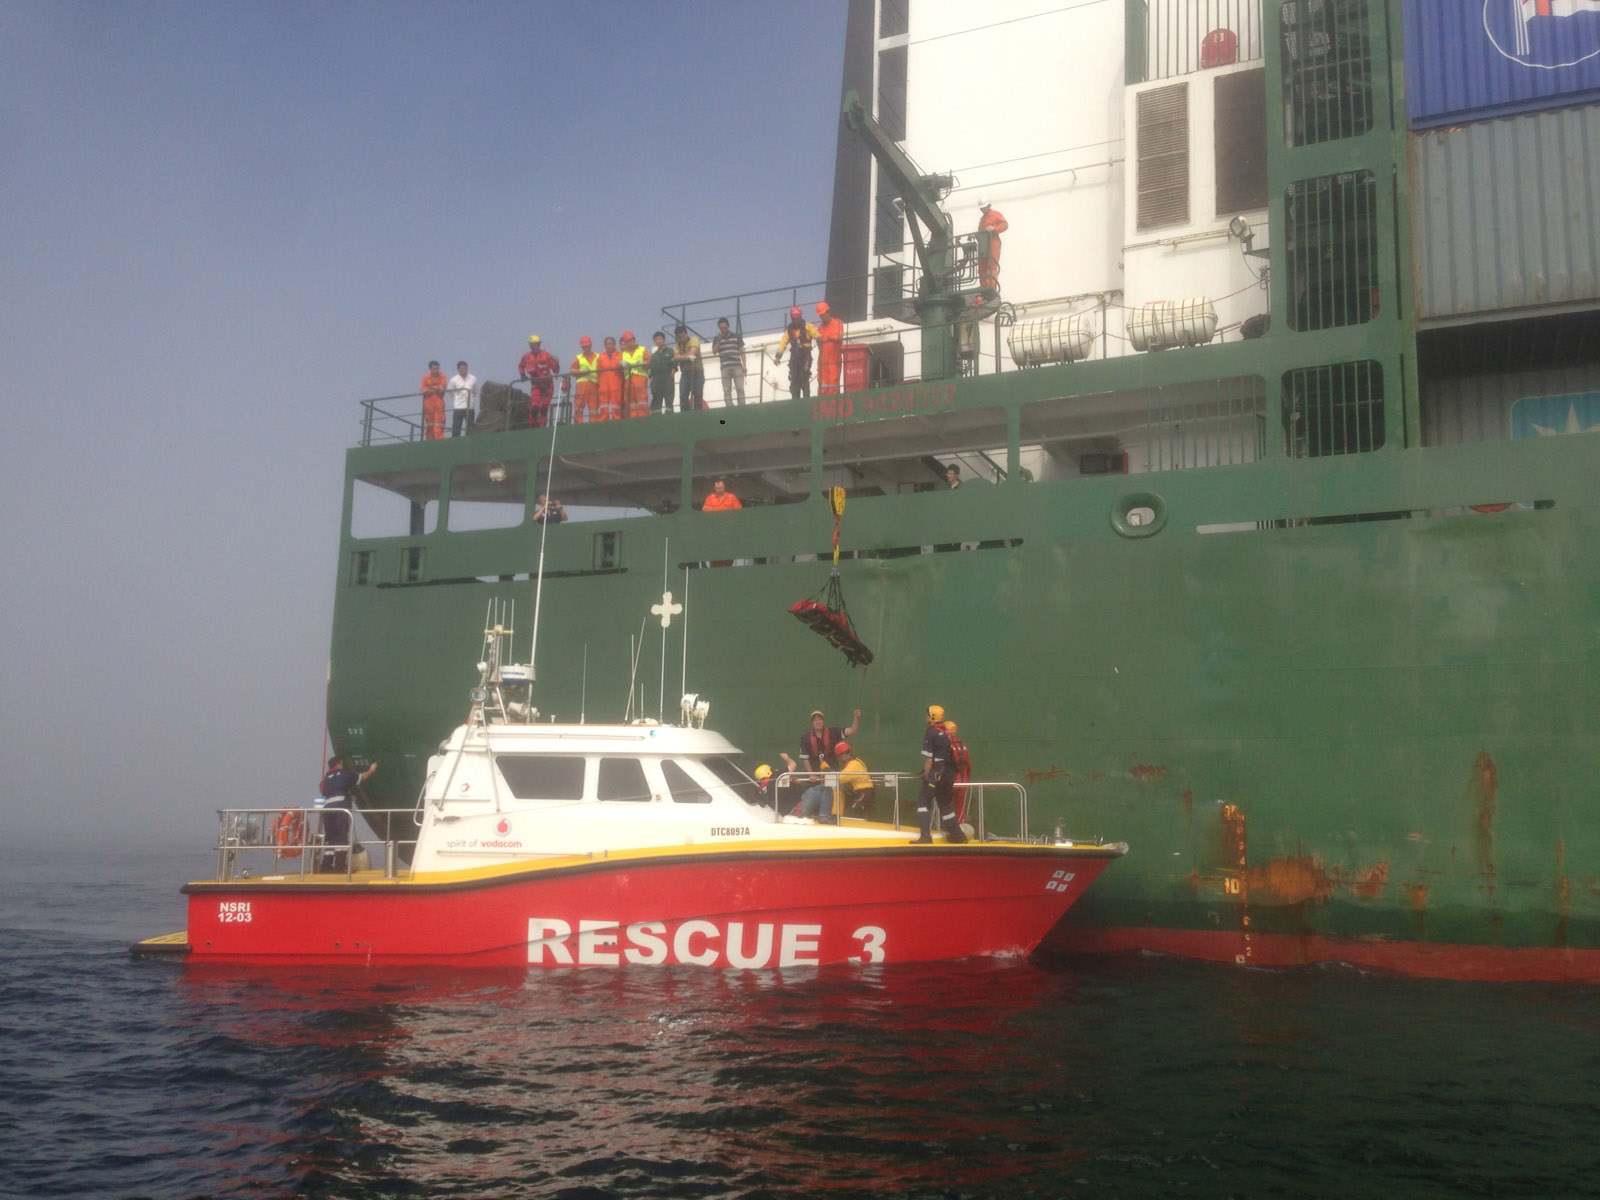 The patient is lowered onto the Spirit of Vodacom. Picture PJ Rabie/NSRI.